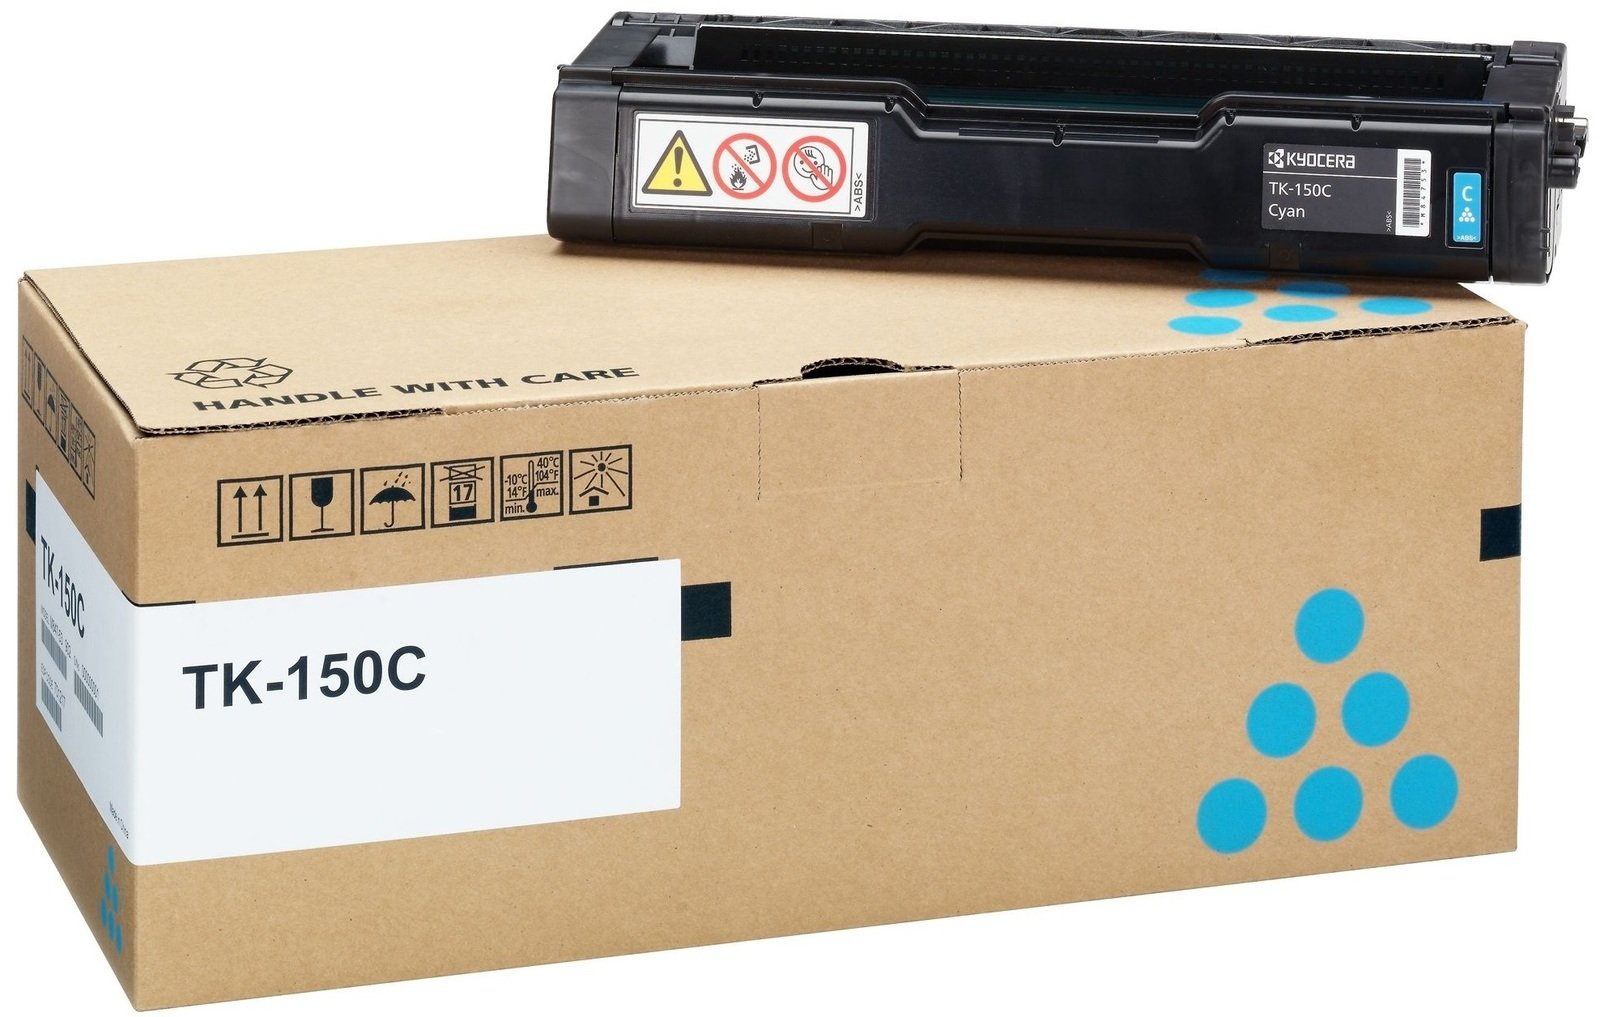 Genuine Cyan Kyocera TK-150C Toner Cartridge - (1T05JKCNL0)